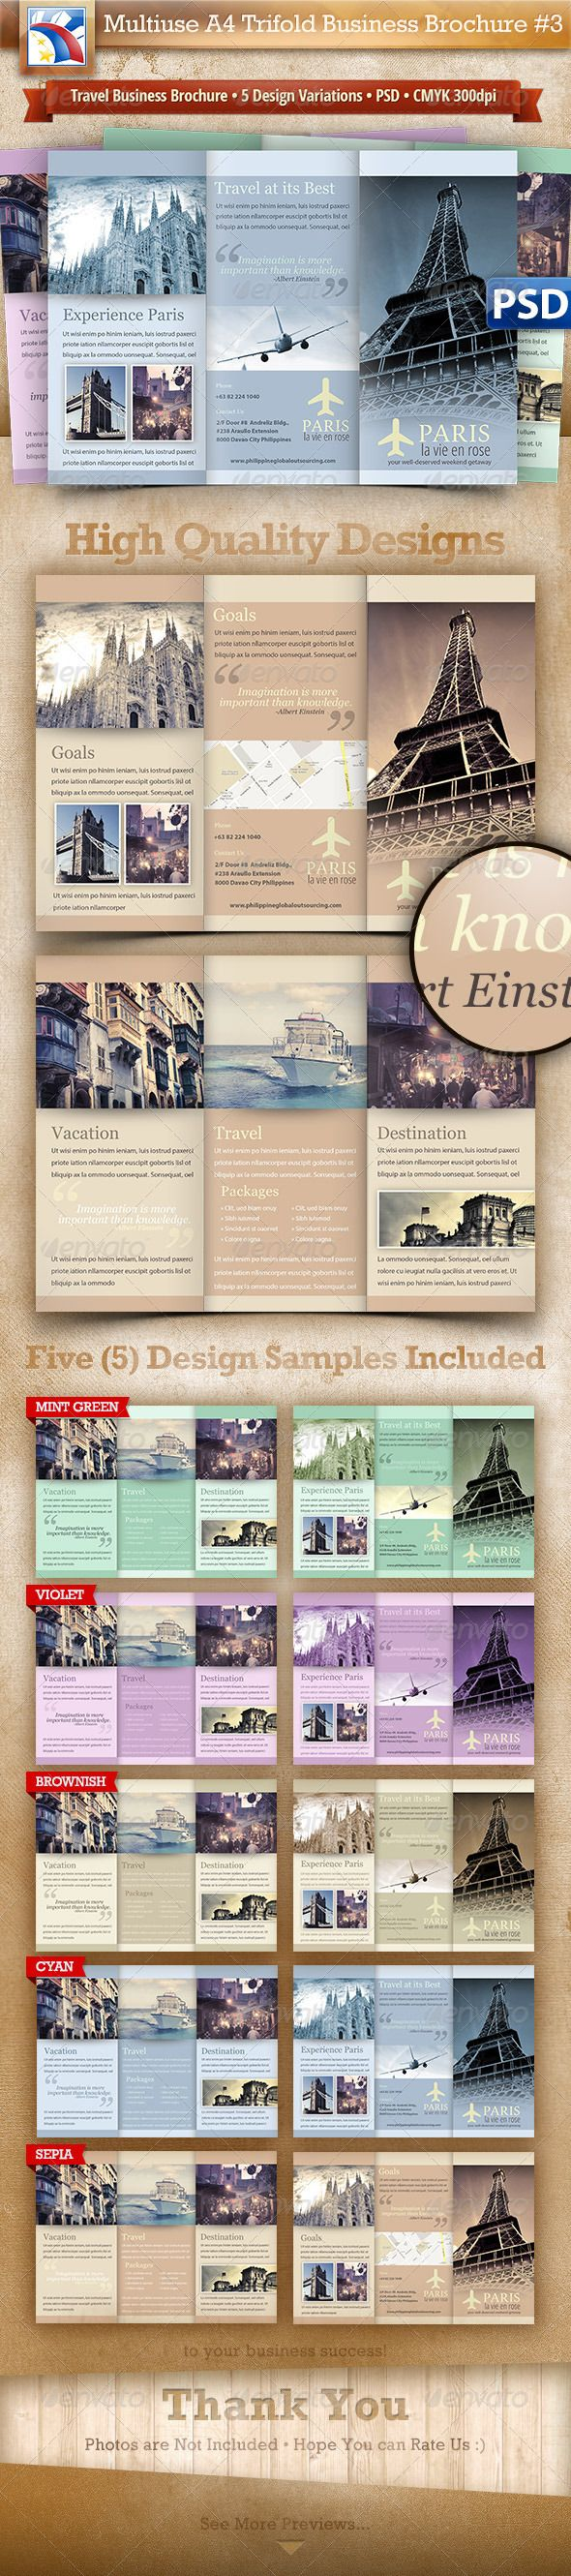 Business Travel A4 Trifold Brochure 5 Variations#3 #GraphicRiver SUBSCRIBE YOUTUBE CHANNEL: http://www.youtube.com/user/TheFederic777?sub_confirmation=1